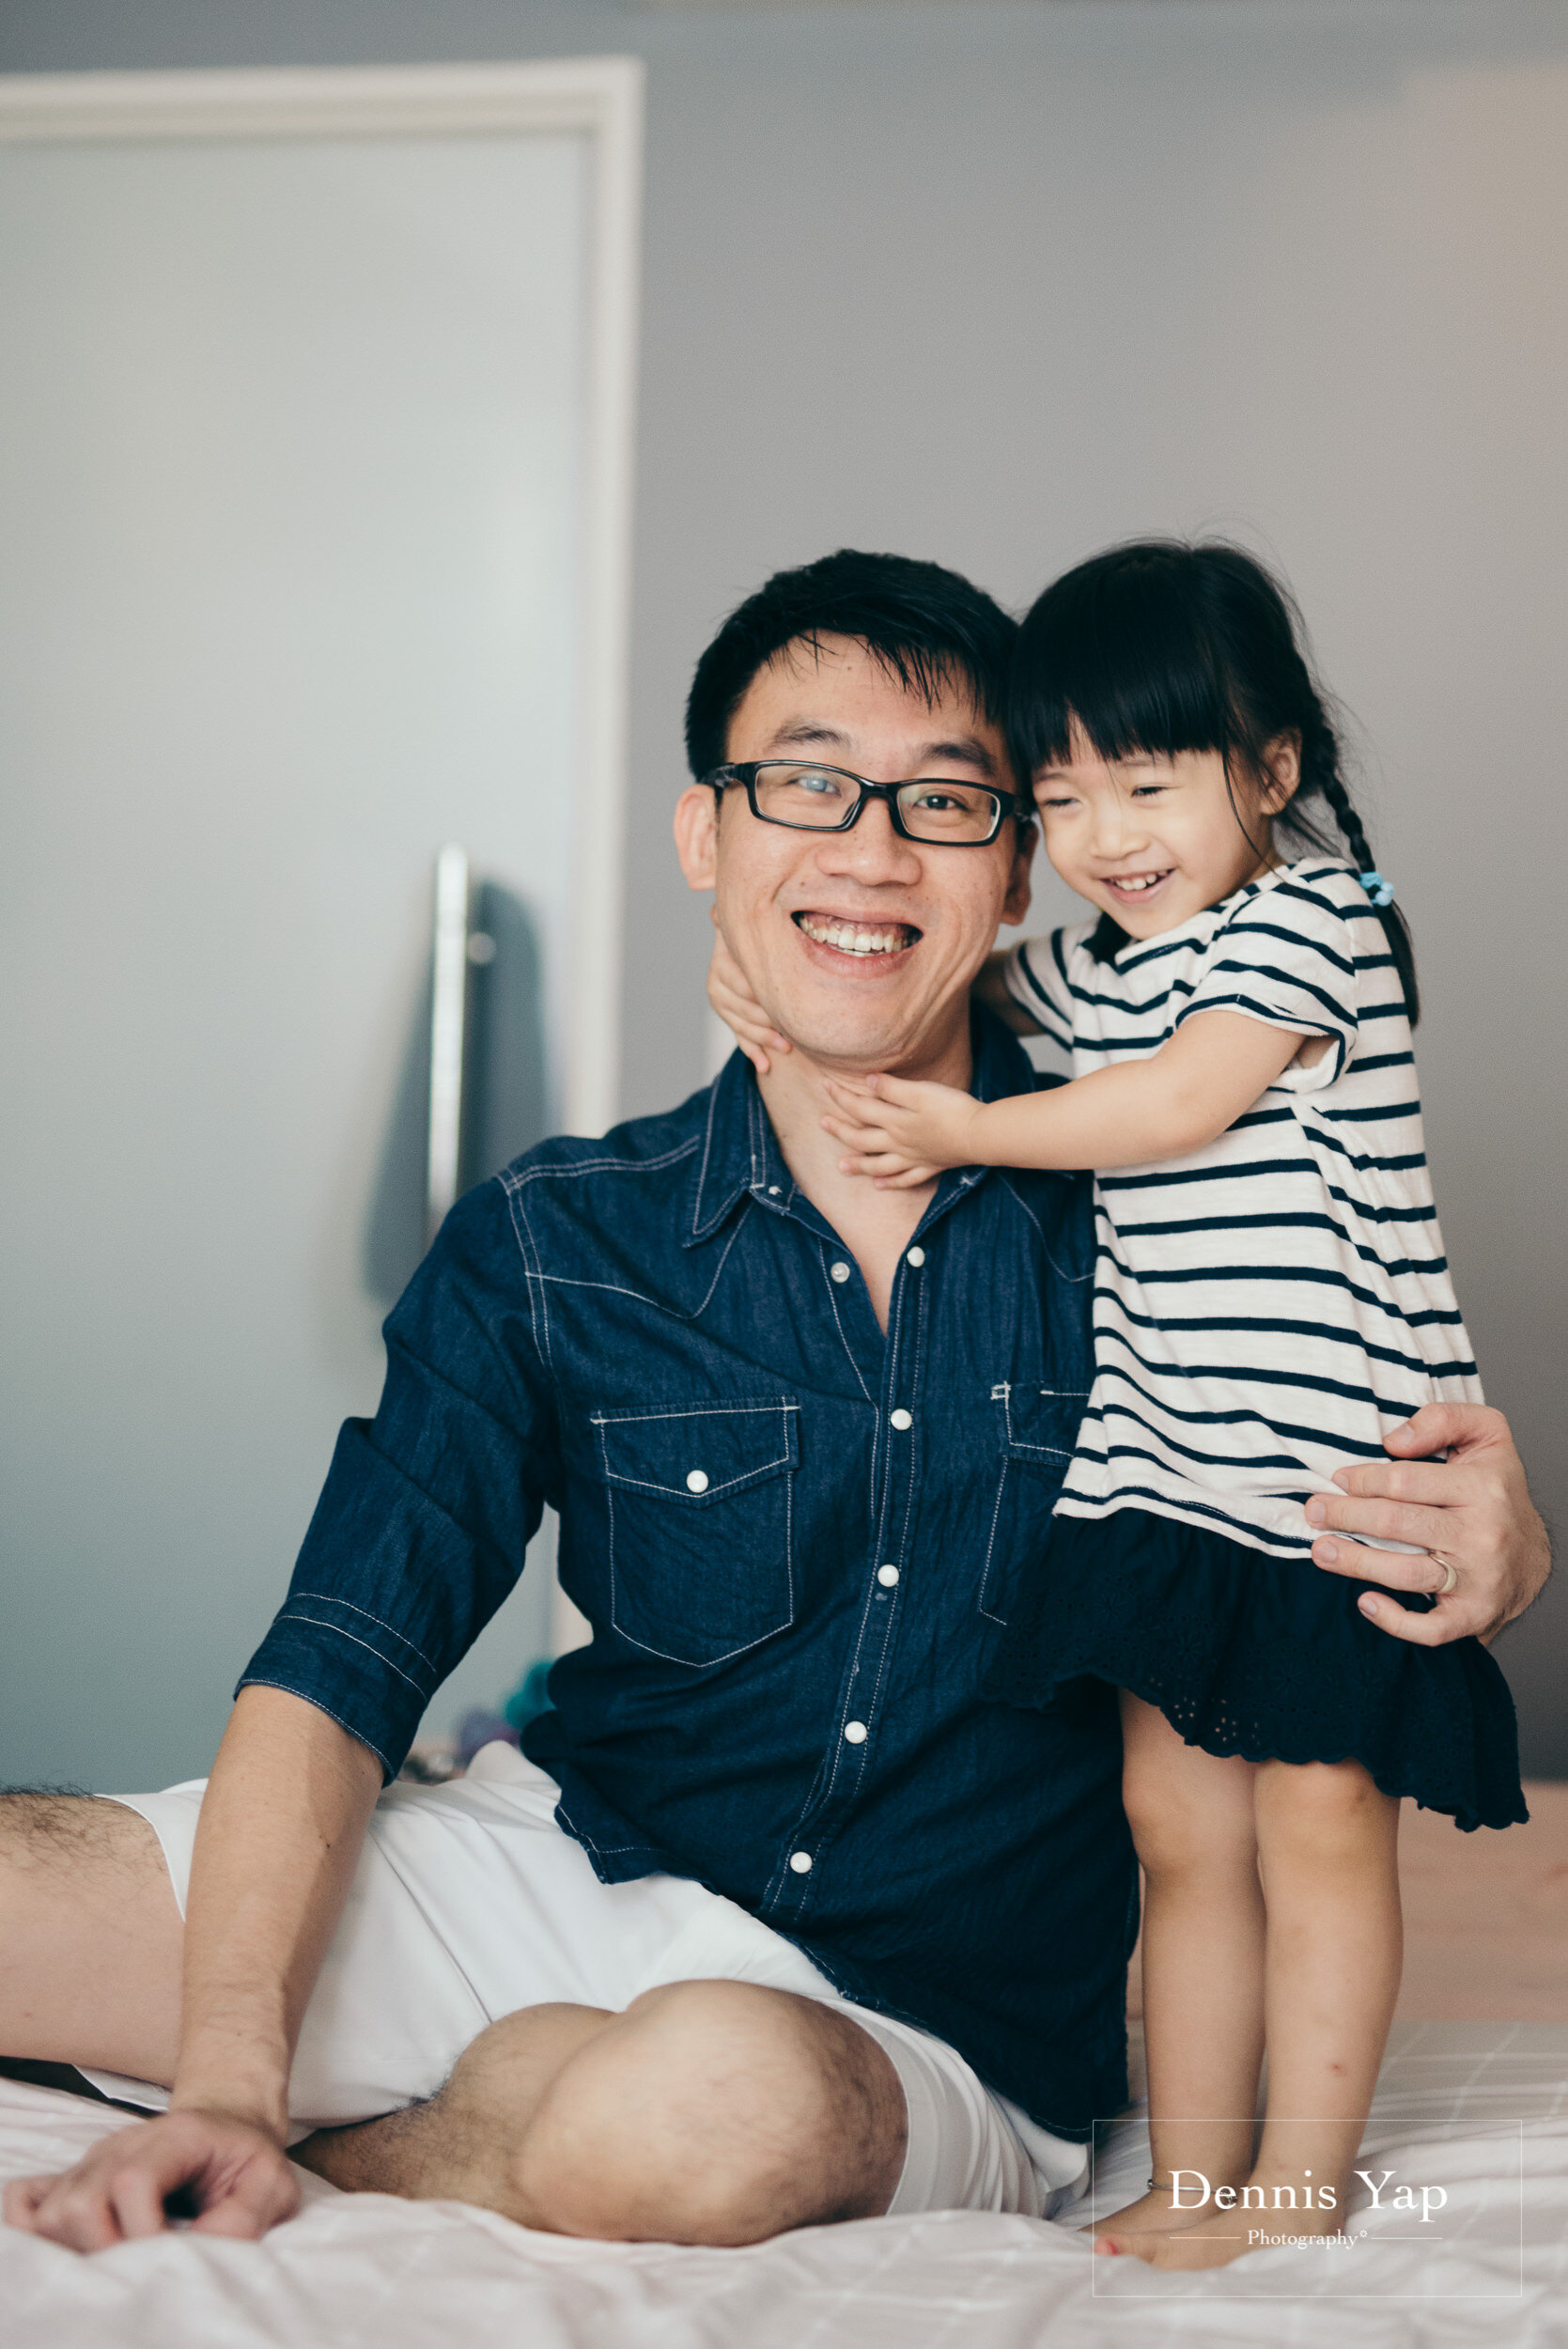 brian xinyi family portrait singapore dennis yap photography malaysia wedding photographer-117.jpg